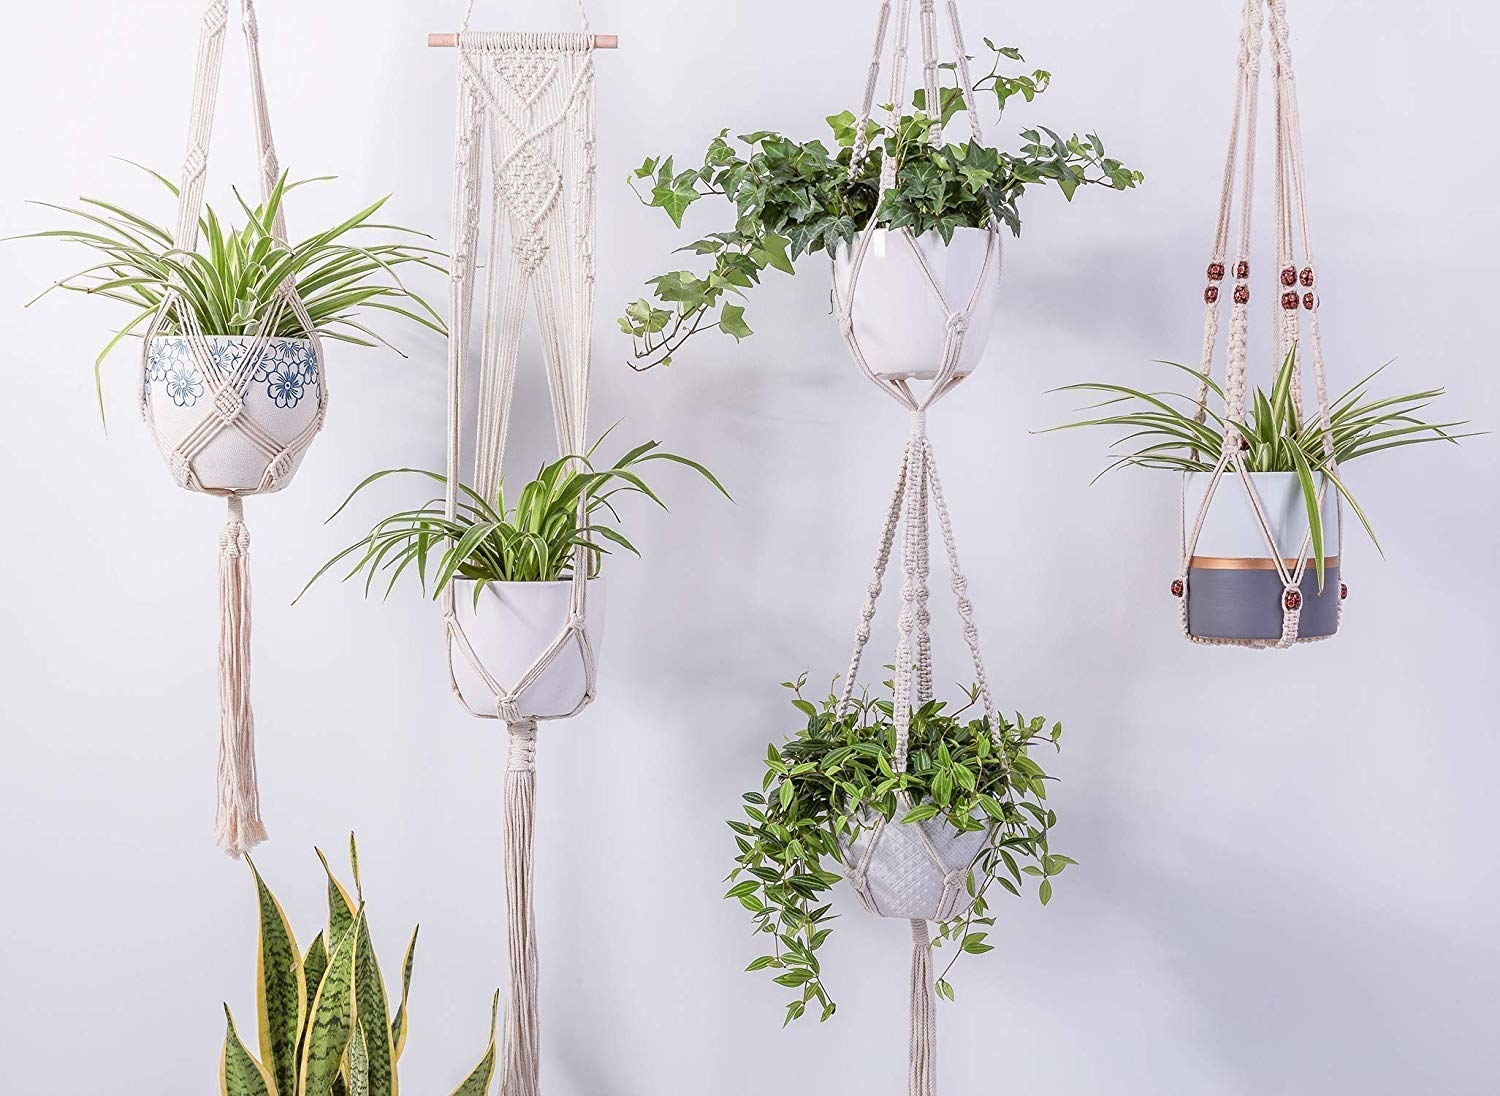 Five plants in macrame plant holders